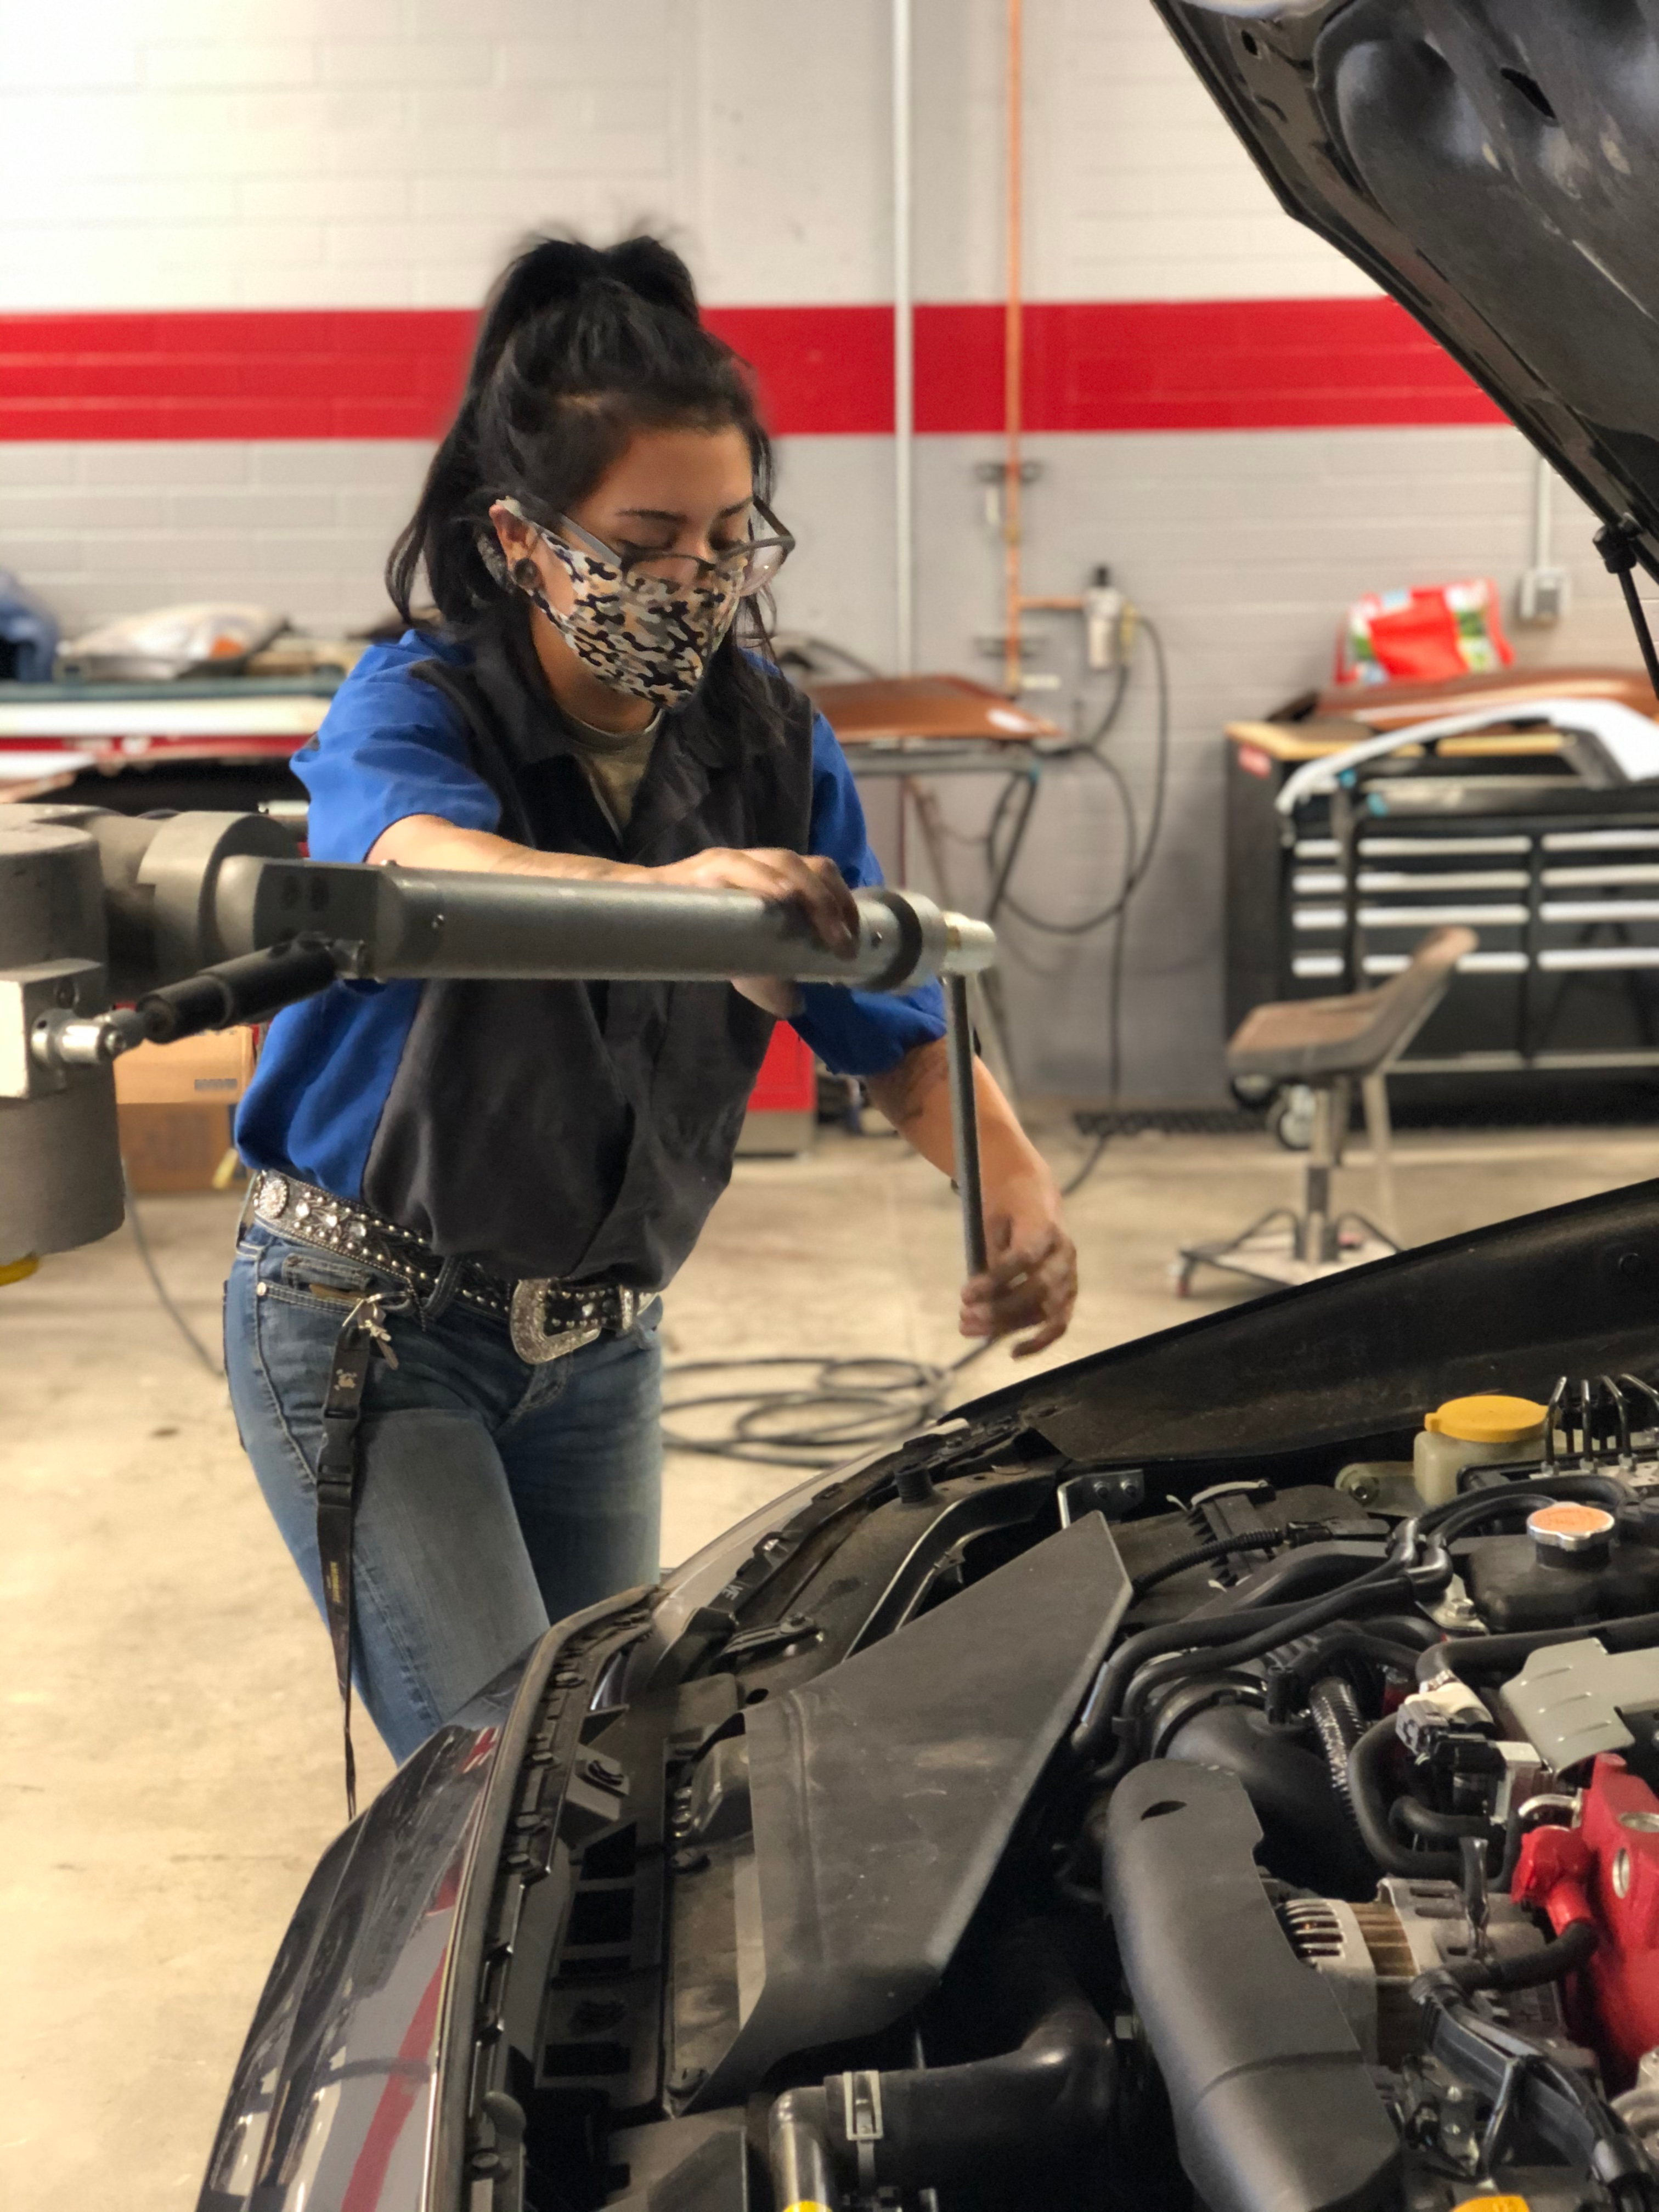 Automotive Student in Mask